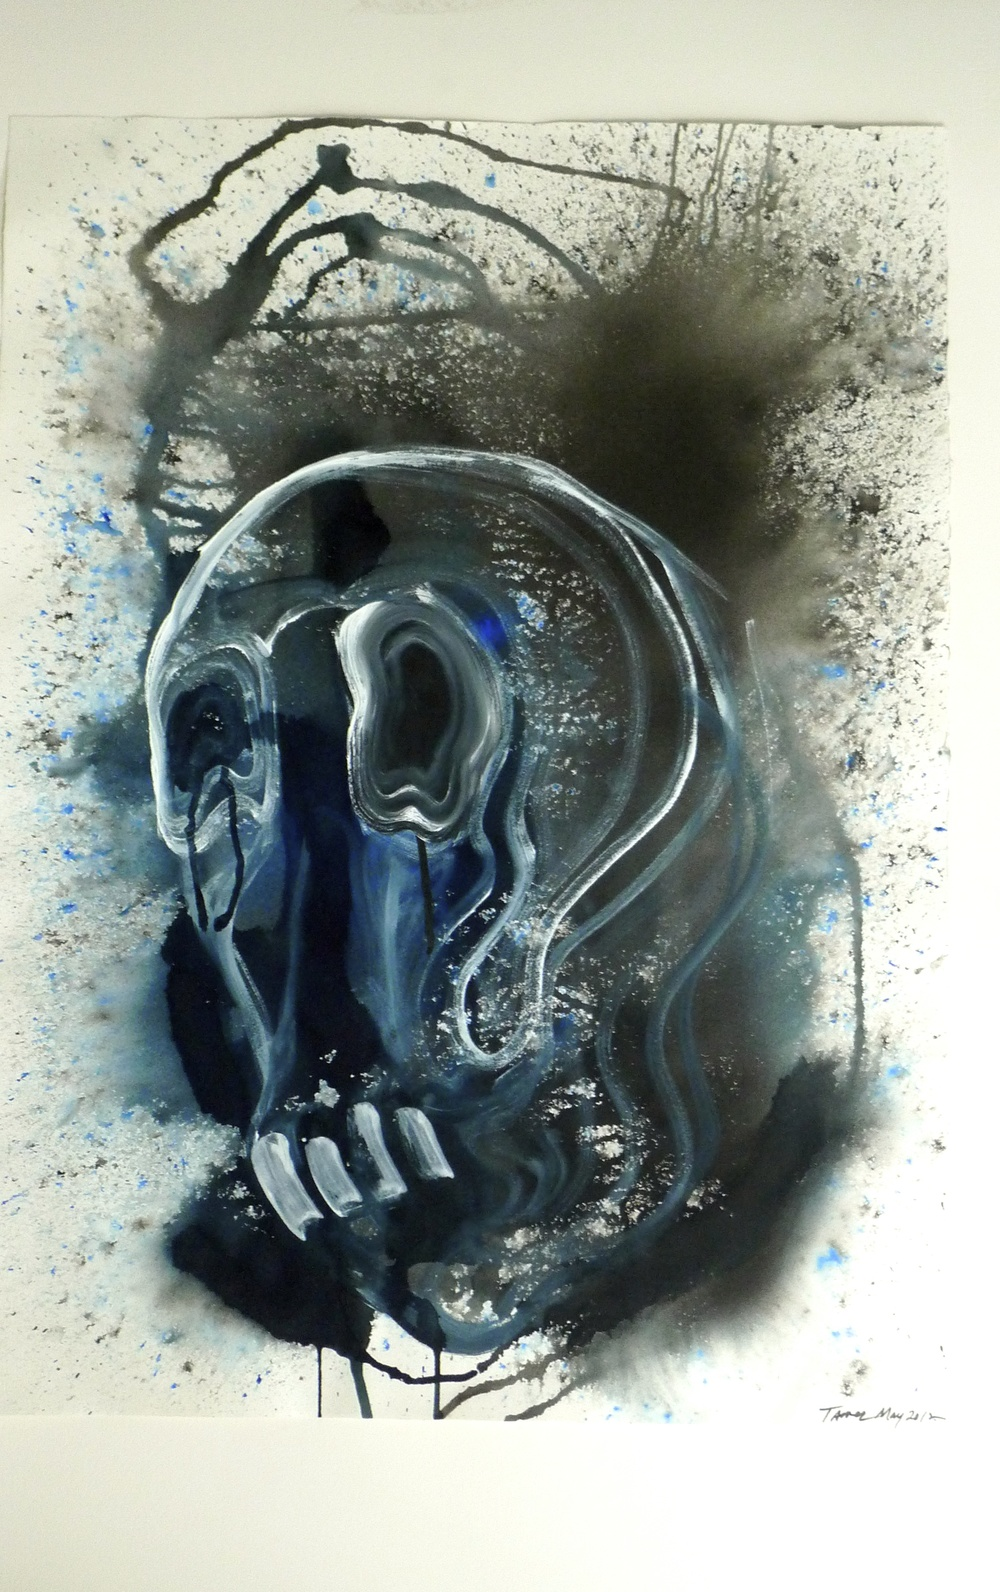 Blue / Black / White Figure & Skulls   (2012) Ink Arches Paper  22 x 30""